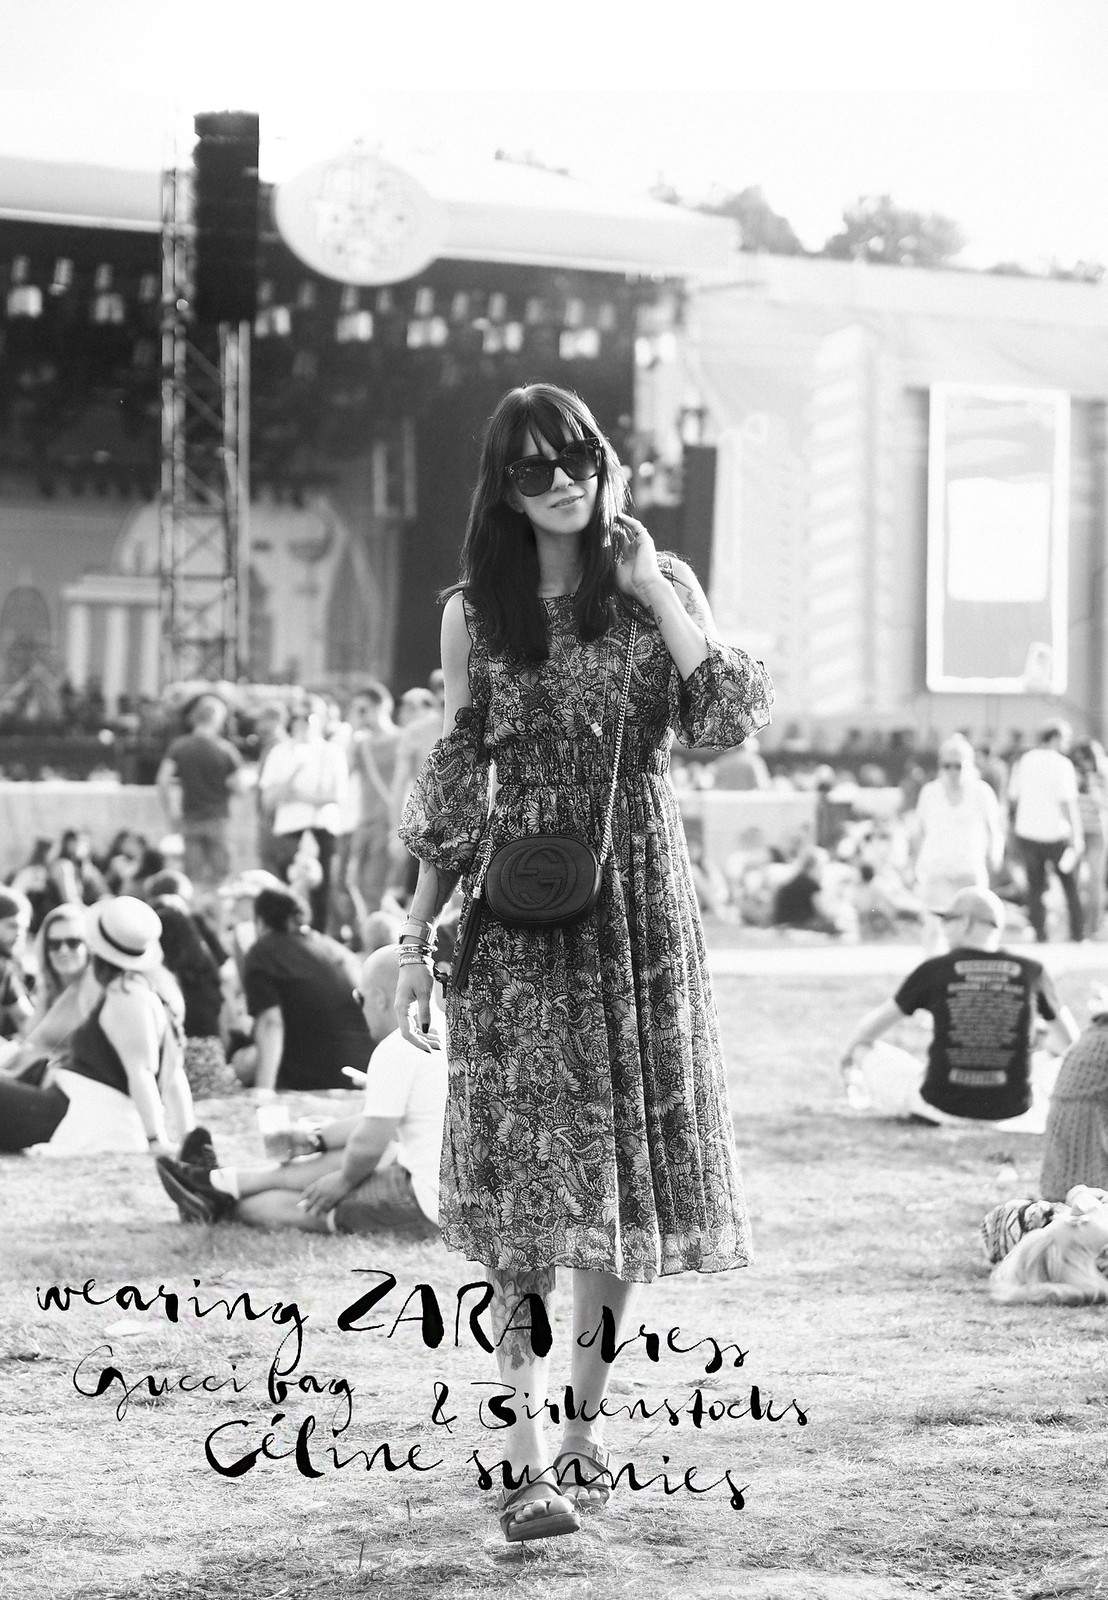 firestone music tour lollapalooza 2016 berlin festival style zara dress gucci soho bag party photography celine sunglasses audrey ootd fashionblogger cats & dogs ricarda schernus modeblogger 3